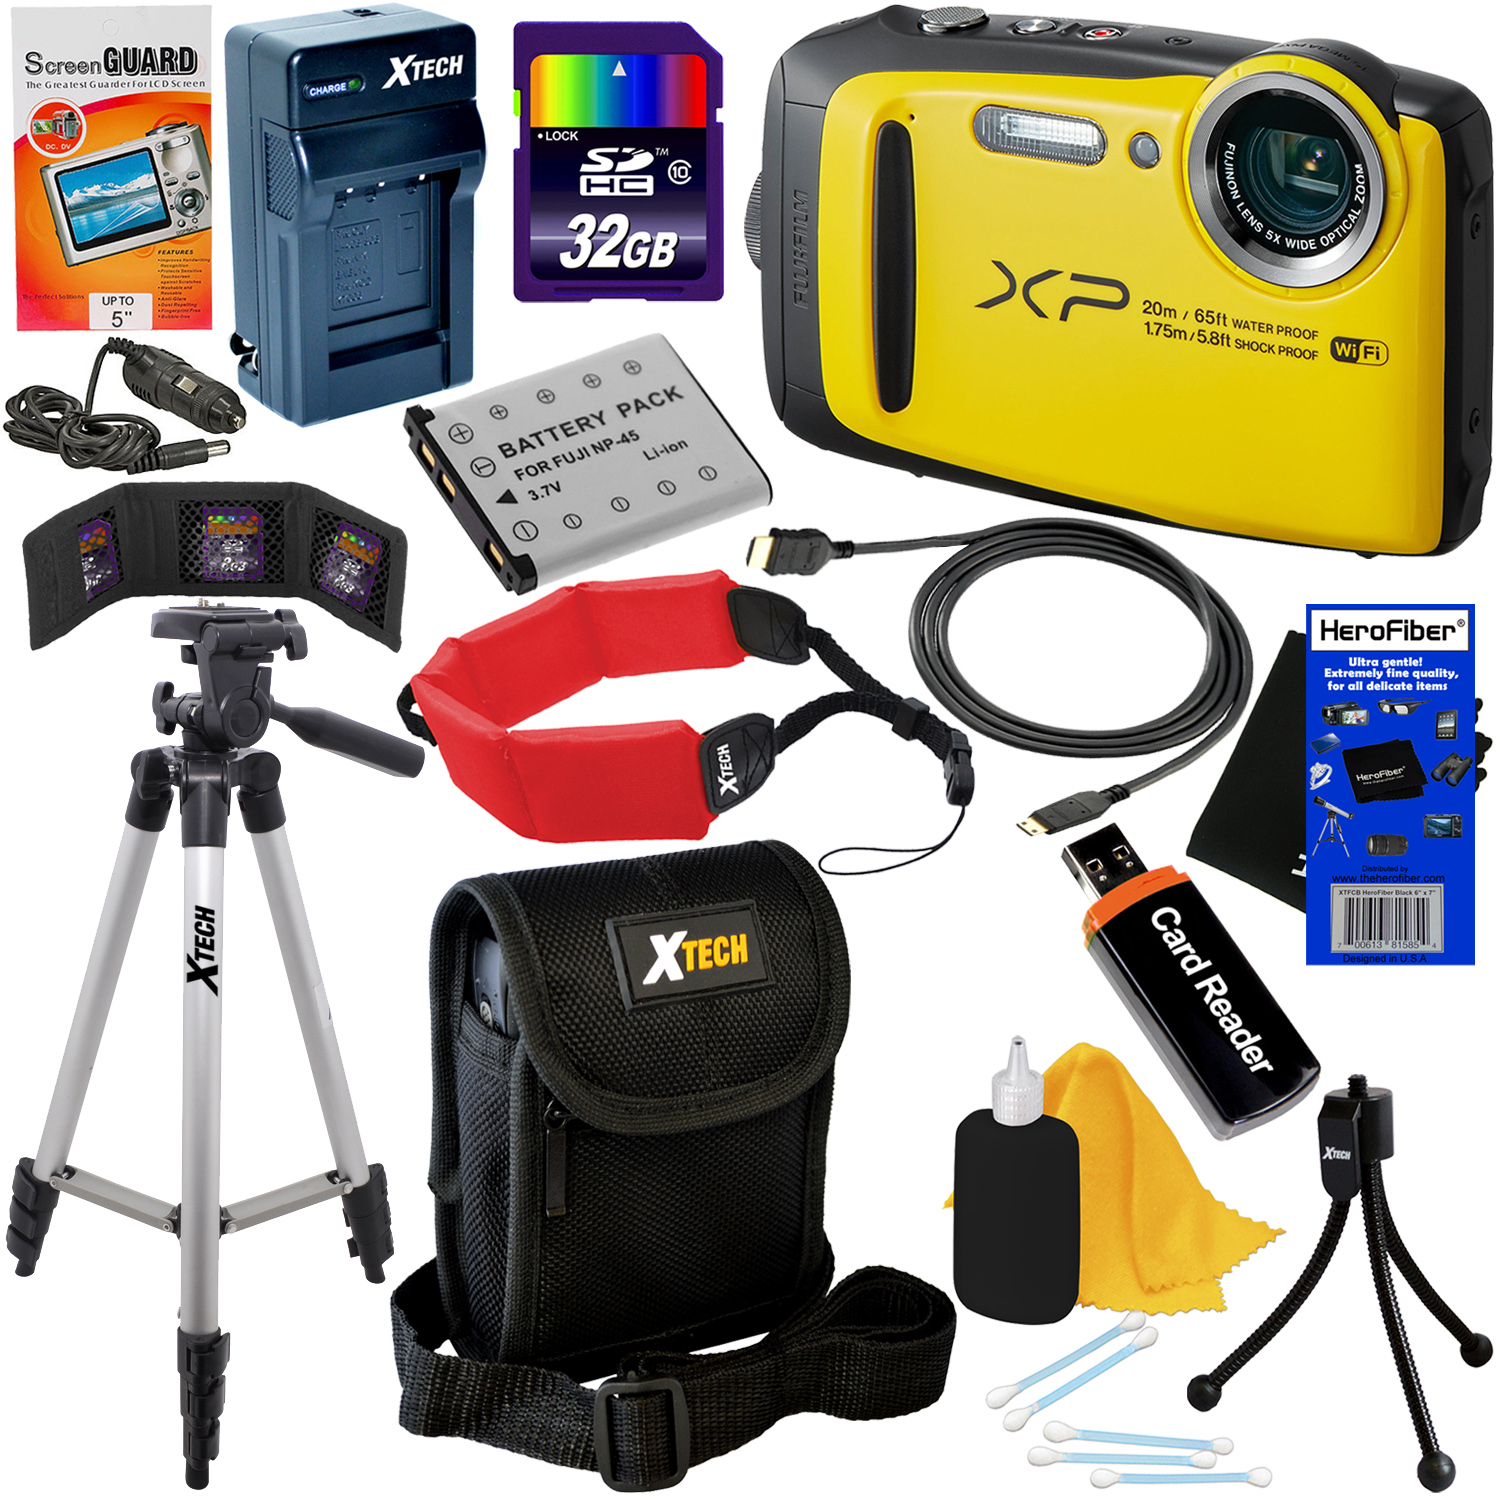 Fujifilm FinePix XP120 16.4 MP Waterproof & Shockproof Digital Camera with built-in Wi-Fi & 5x Optical Zoom (Yellow) + NP-45 Battery & AC/DC Charger + 11pc 32GB Deluxe Accessory Kit w/ HeroFiber Cloth